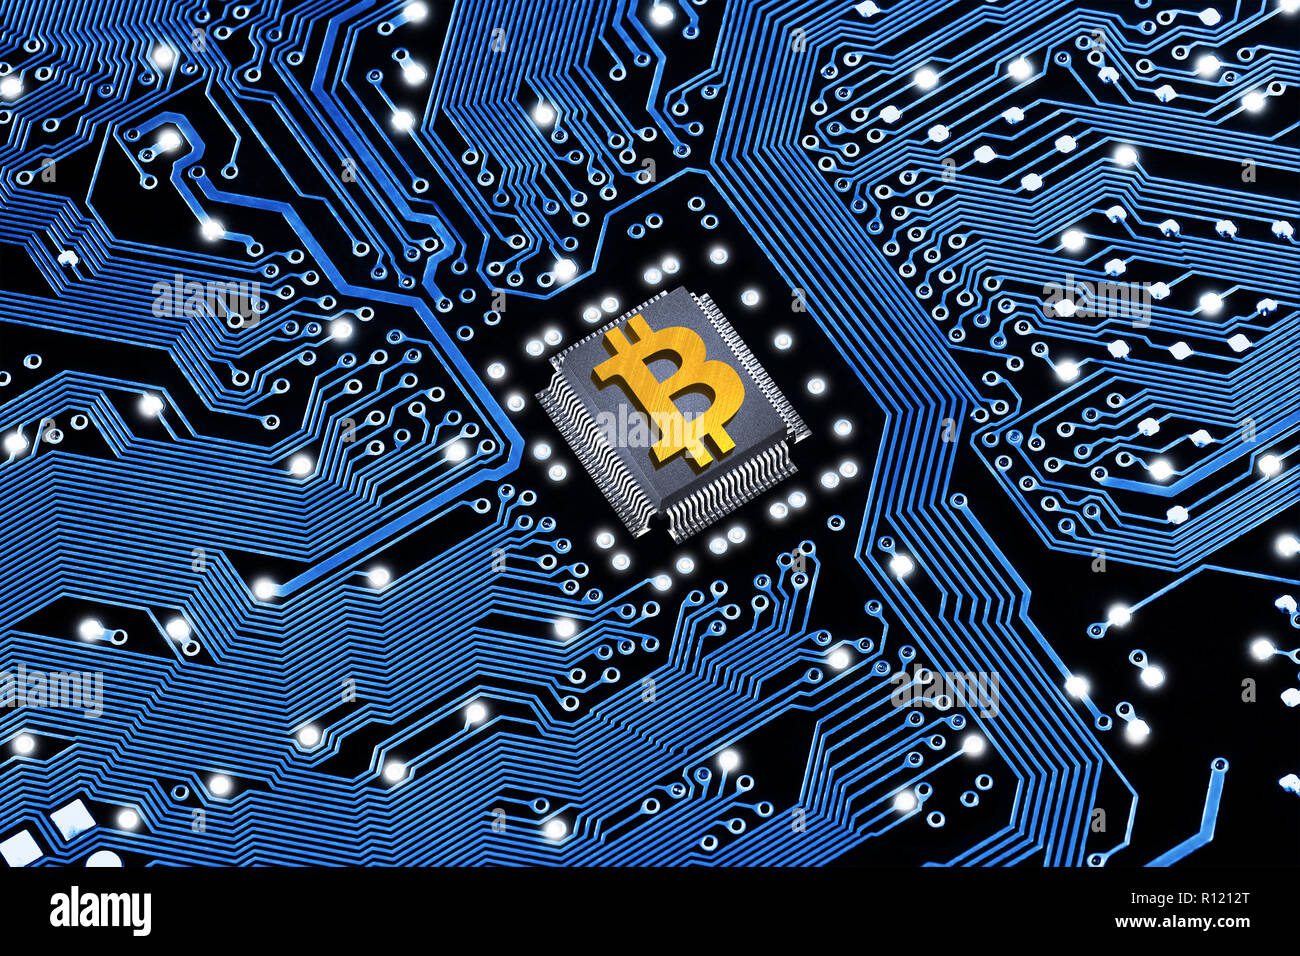 Outstanding Printed Circuit Board With A Processor And A Bitcoin Symbol The Wiring 101 Swasaxxcnl